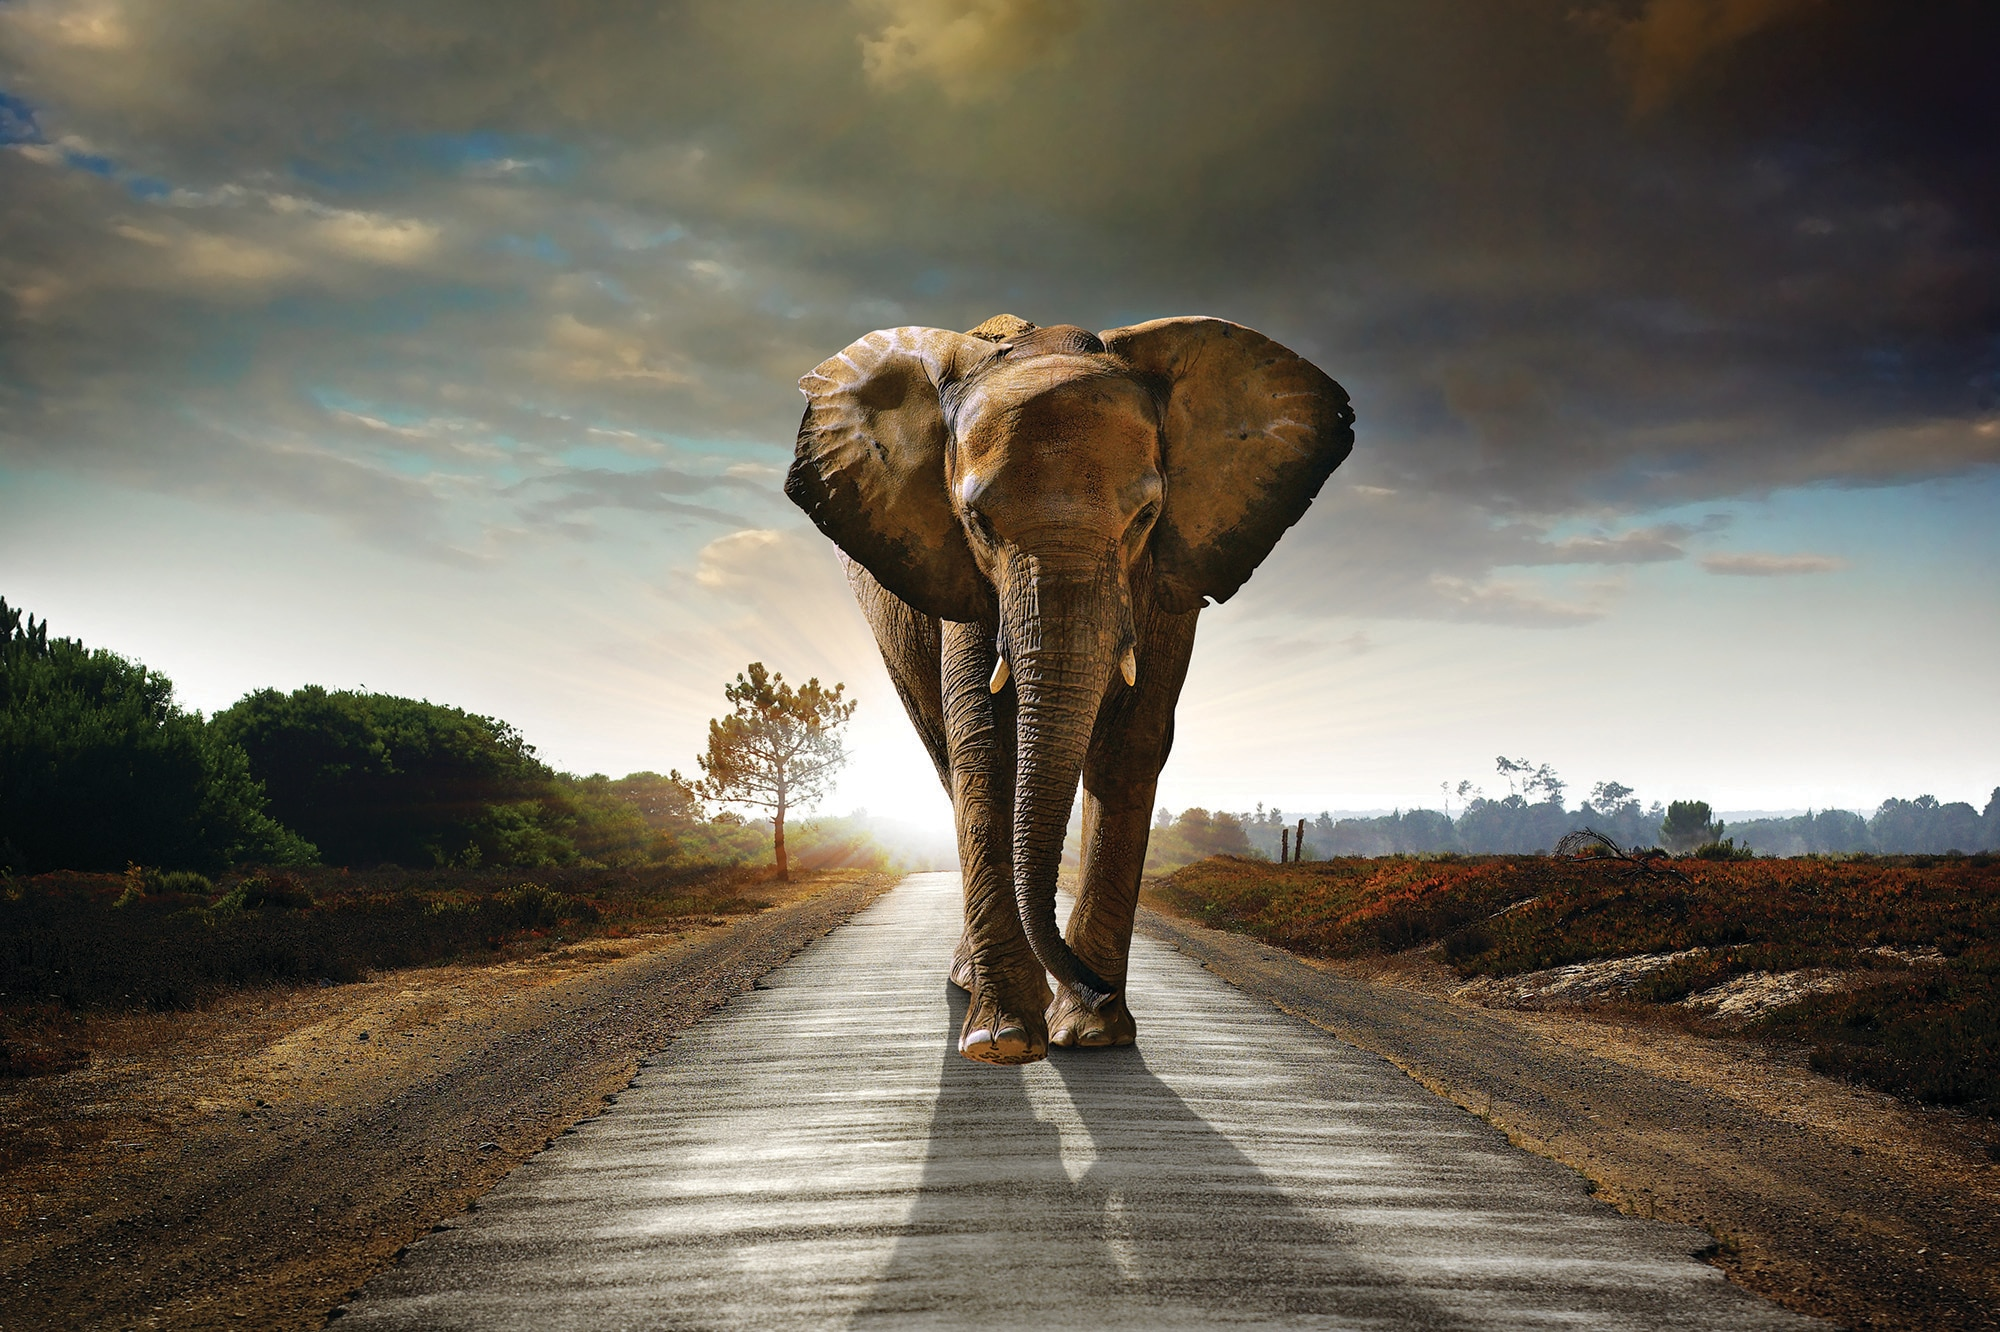 top 10 ways to save wildlife shareamerica elephant walking on a road carlos caetano shutterstock com